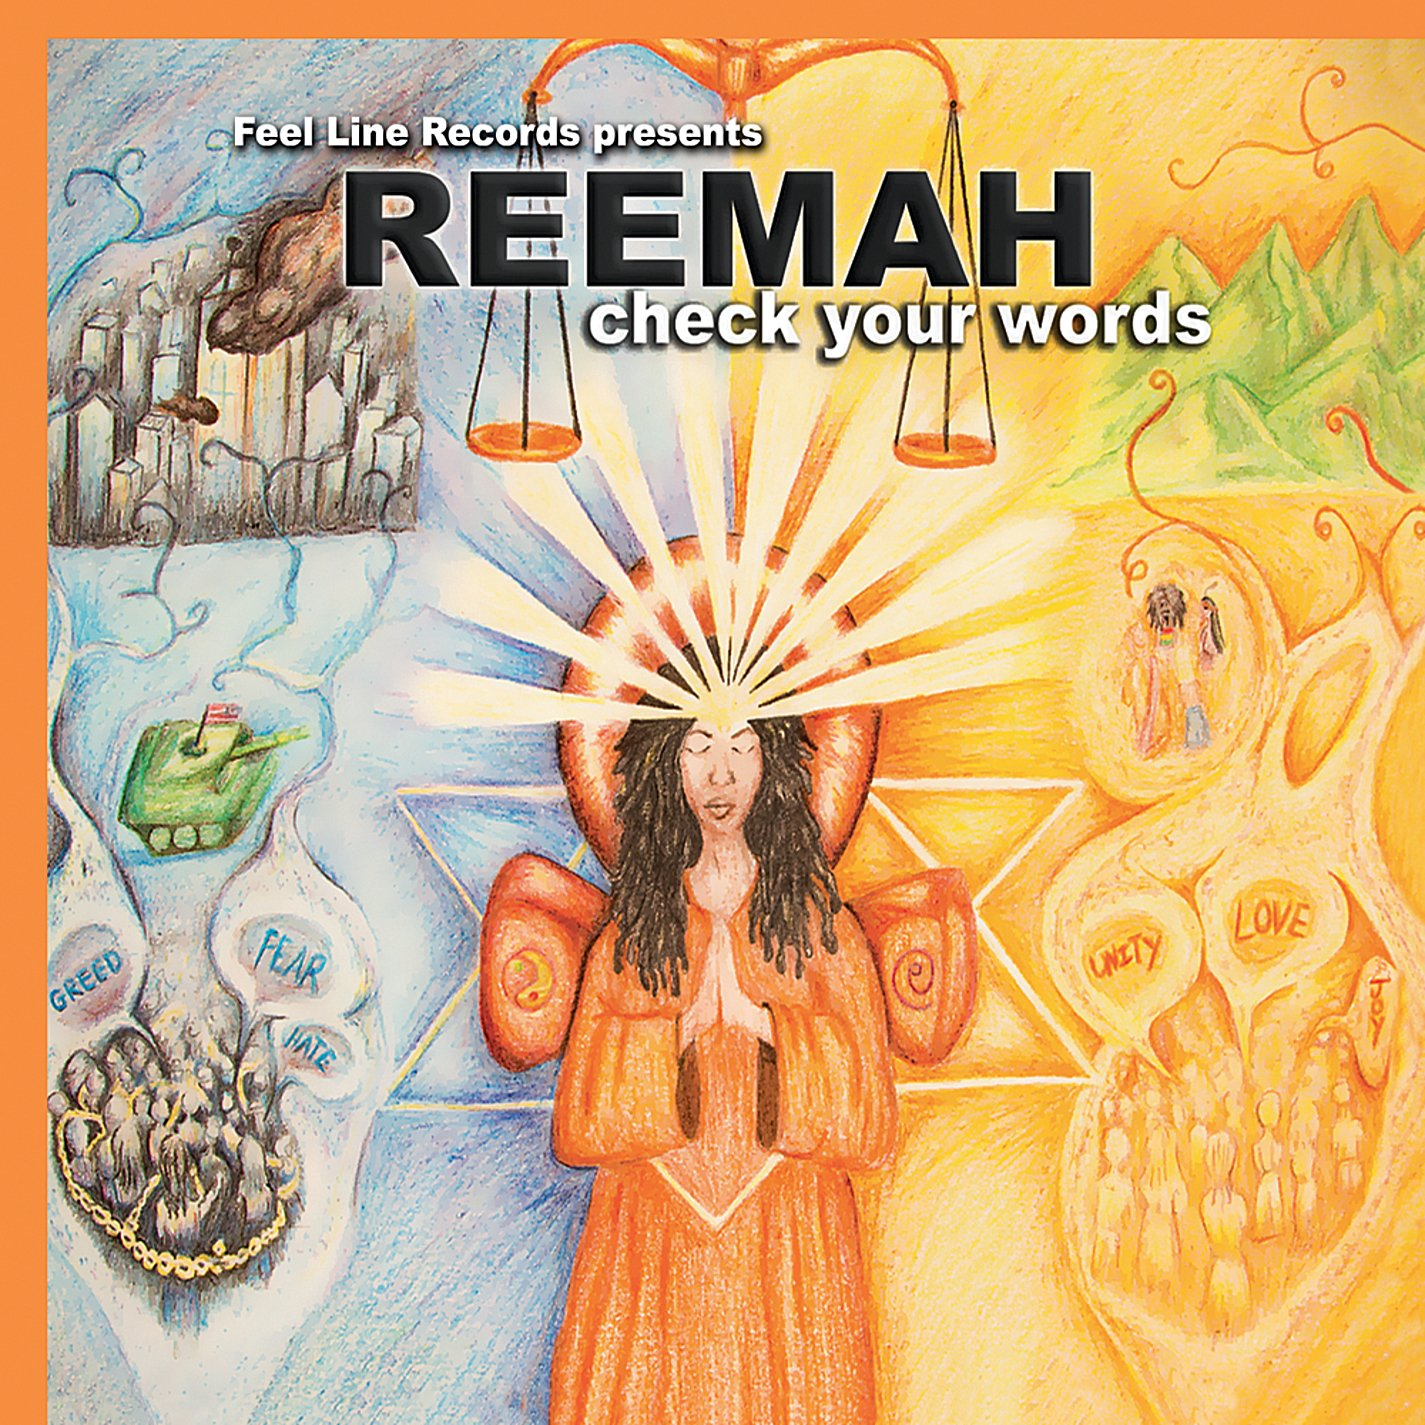 reemah check your words